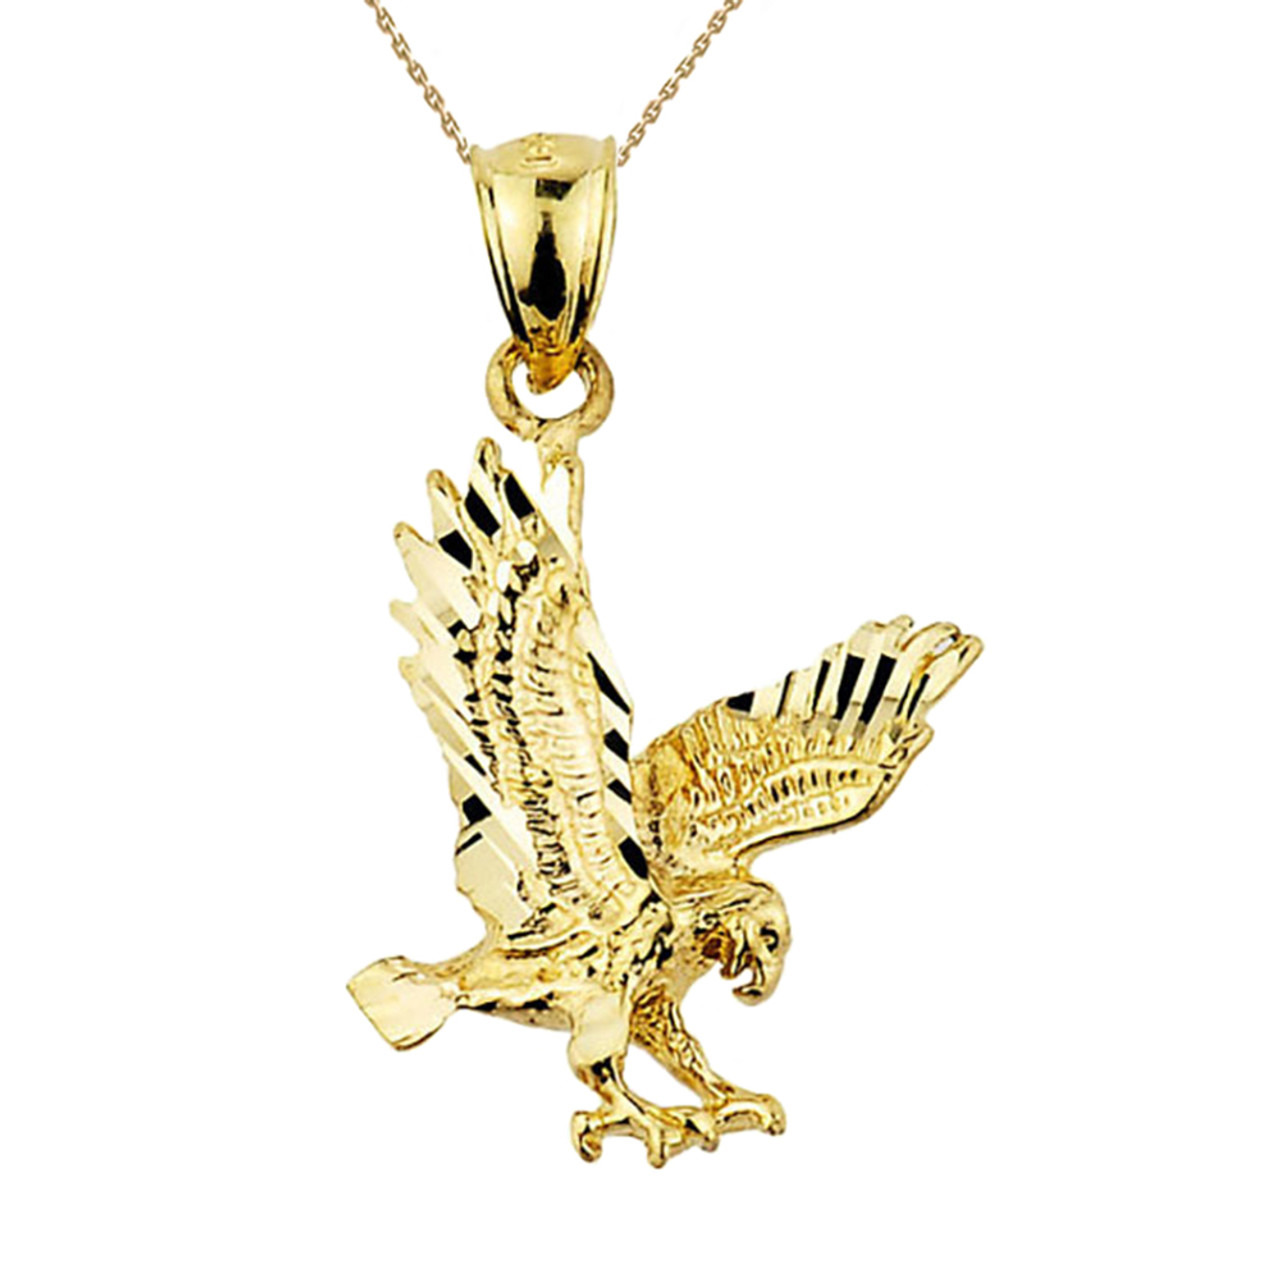 Solid yellow gold flying eagle pendant necklace solid yellow gold diamond cut eagle charm pendant necklace aloadofball Images